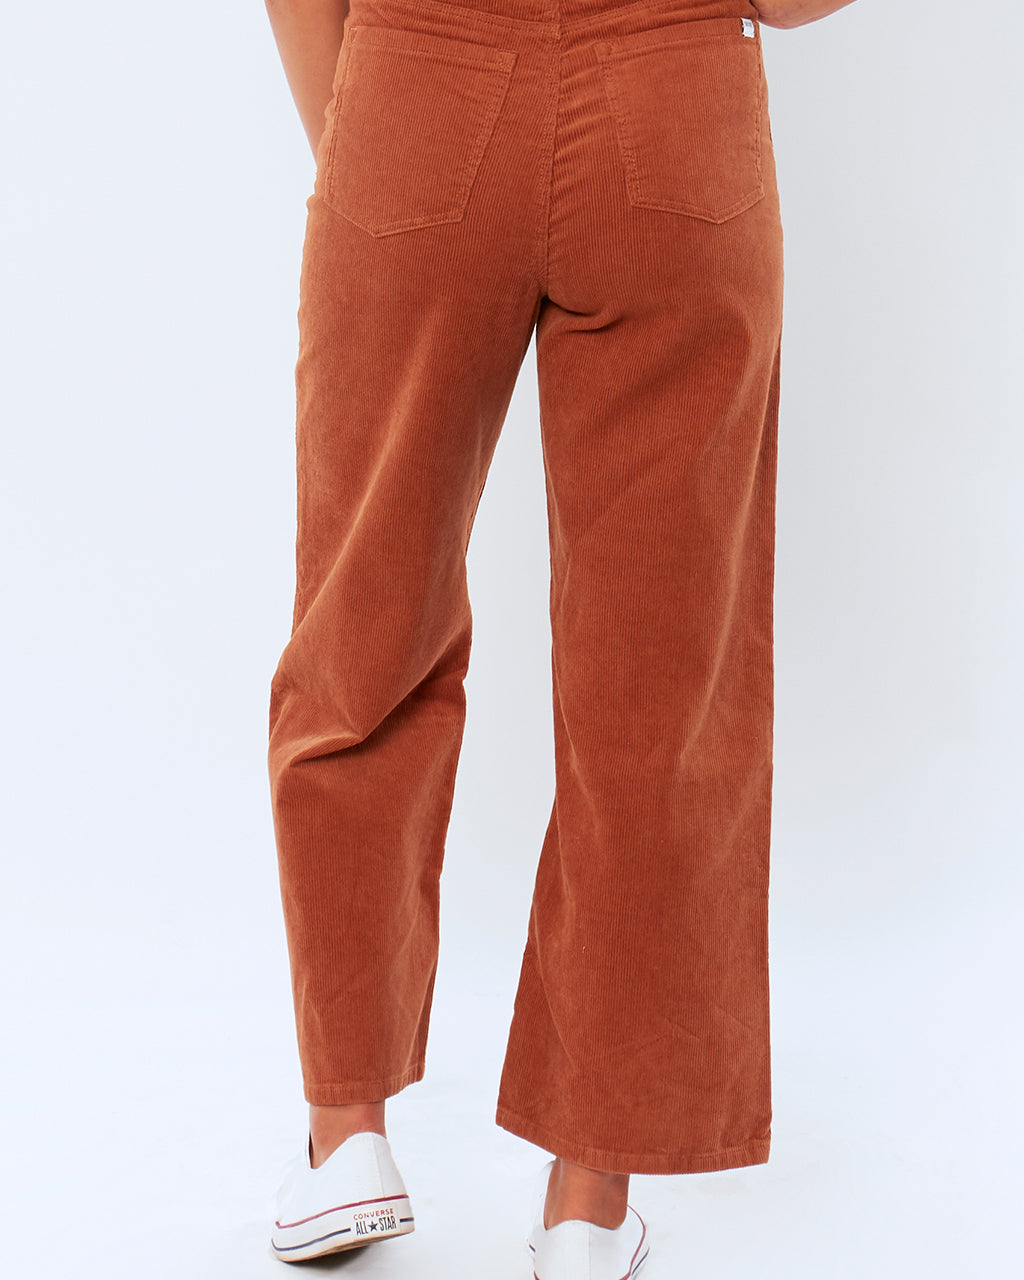 on figure back view of poppy cord woven pants